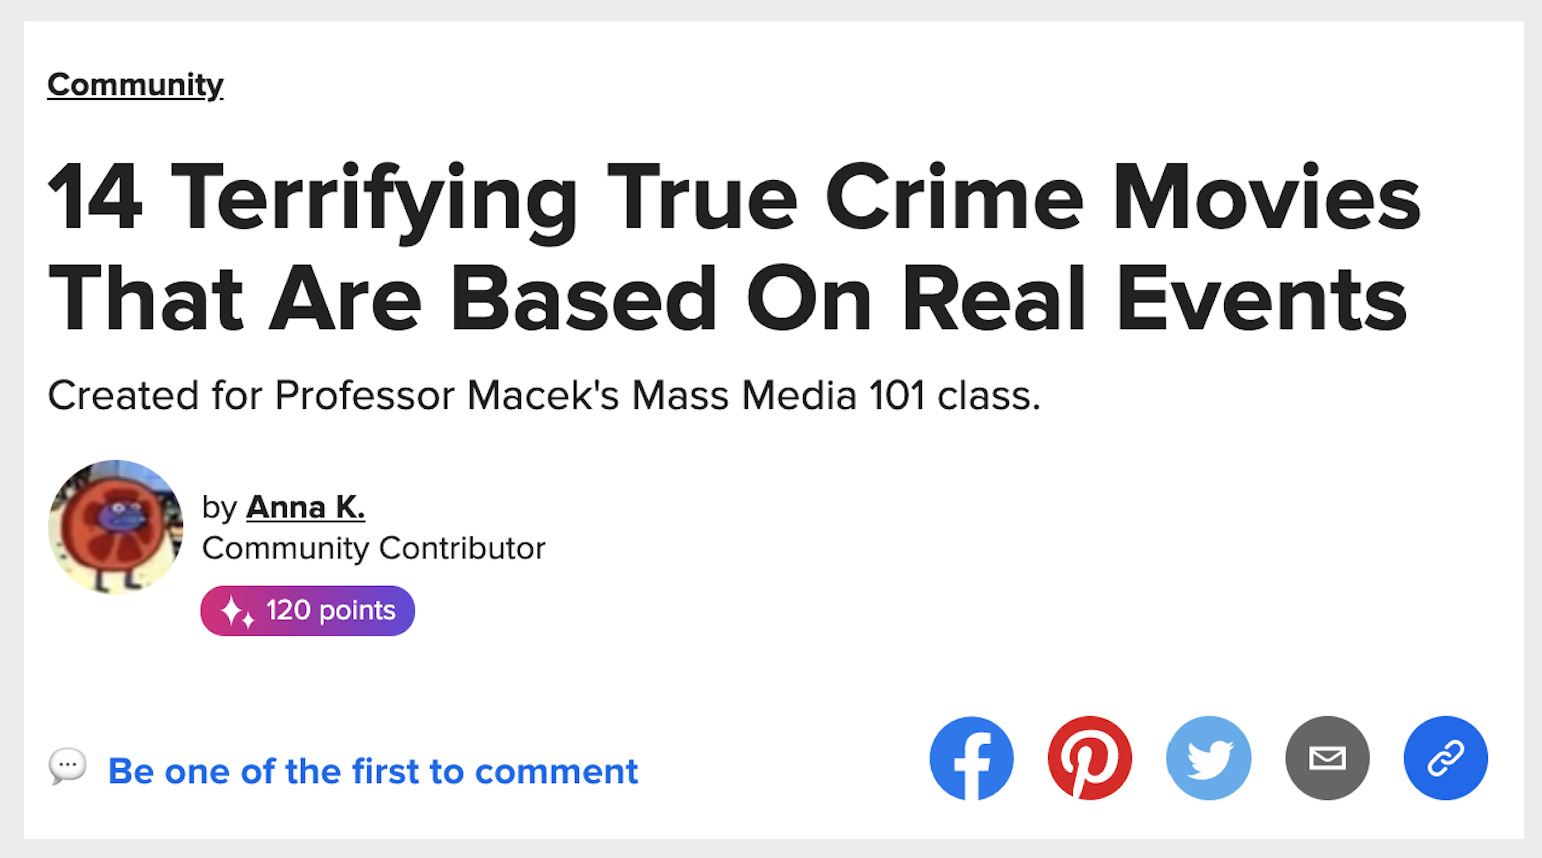 a buzzfeed headline that says 14 terrifying true crime movies that are based on real events